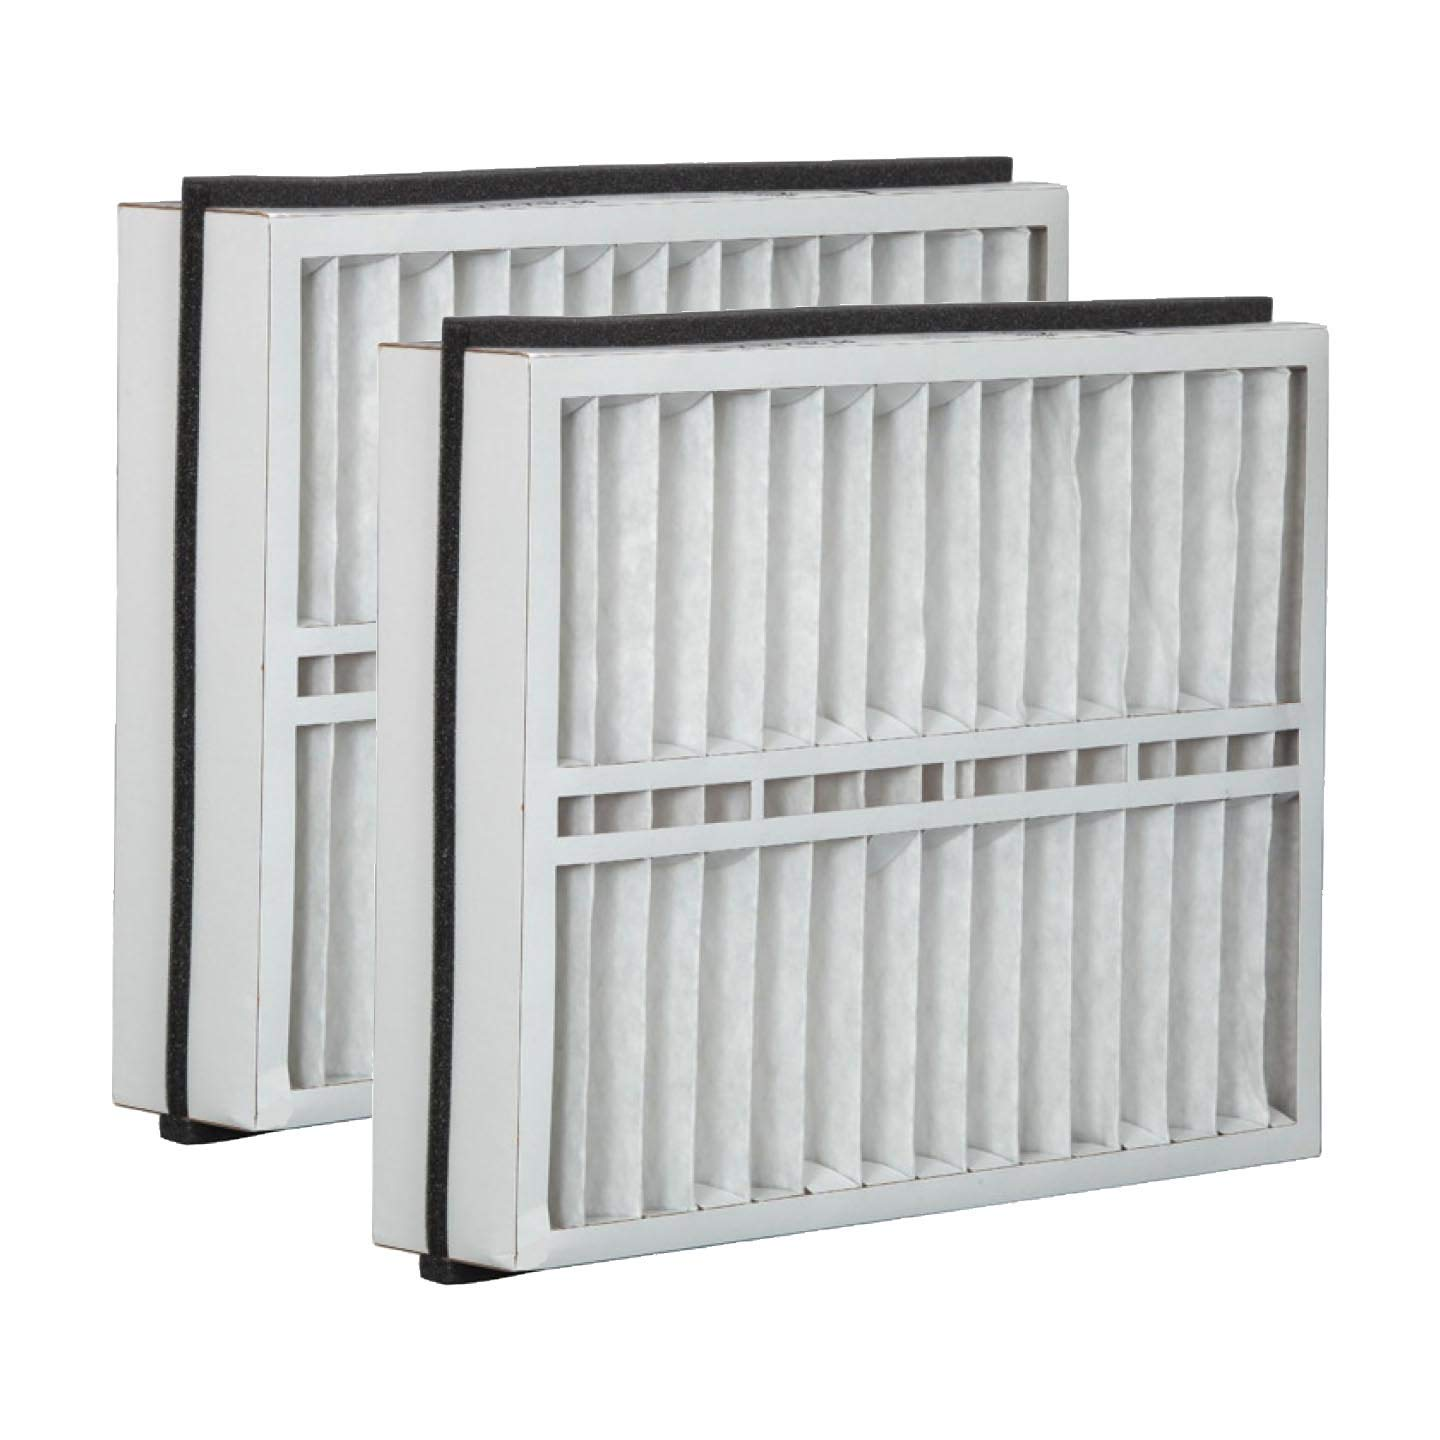 Tier1 21x26x5 Merv 11 Replacement for American Standard Air Filter 2 Pack